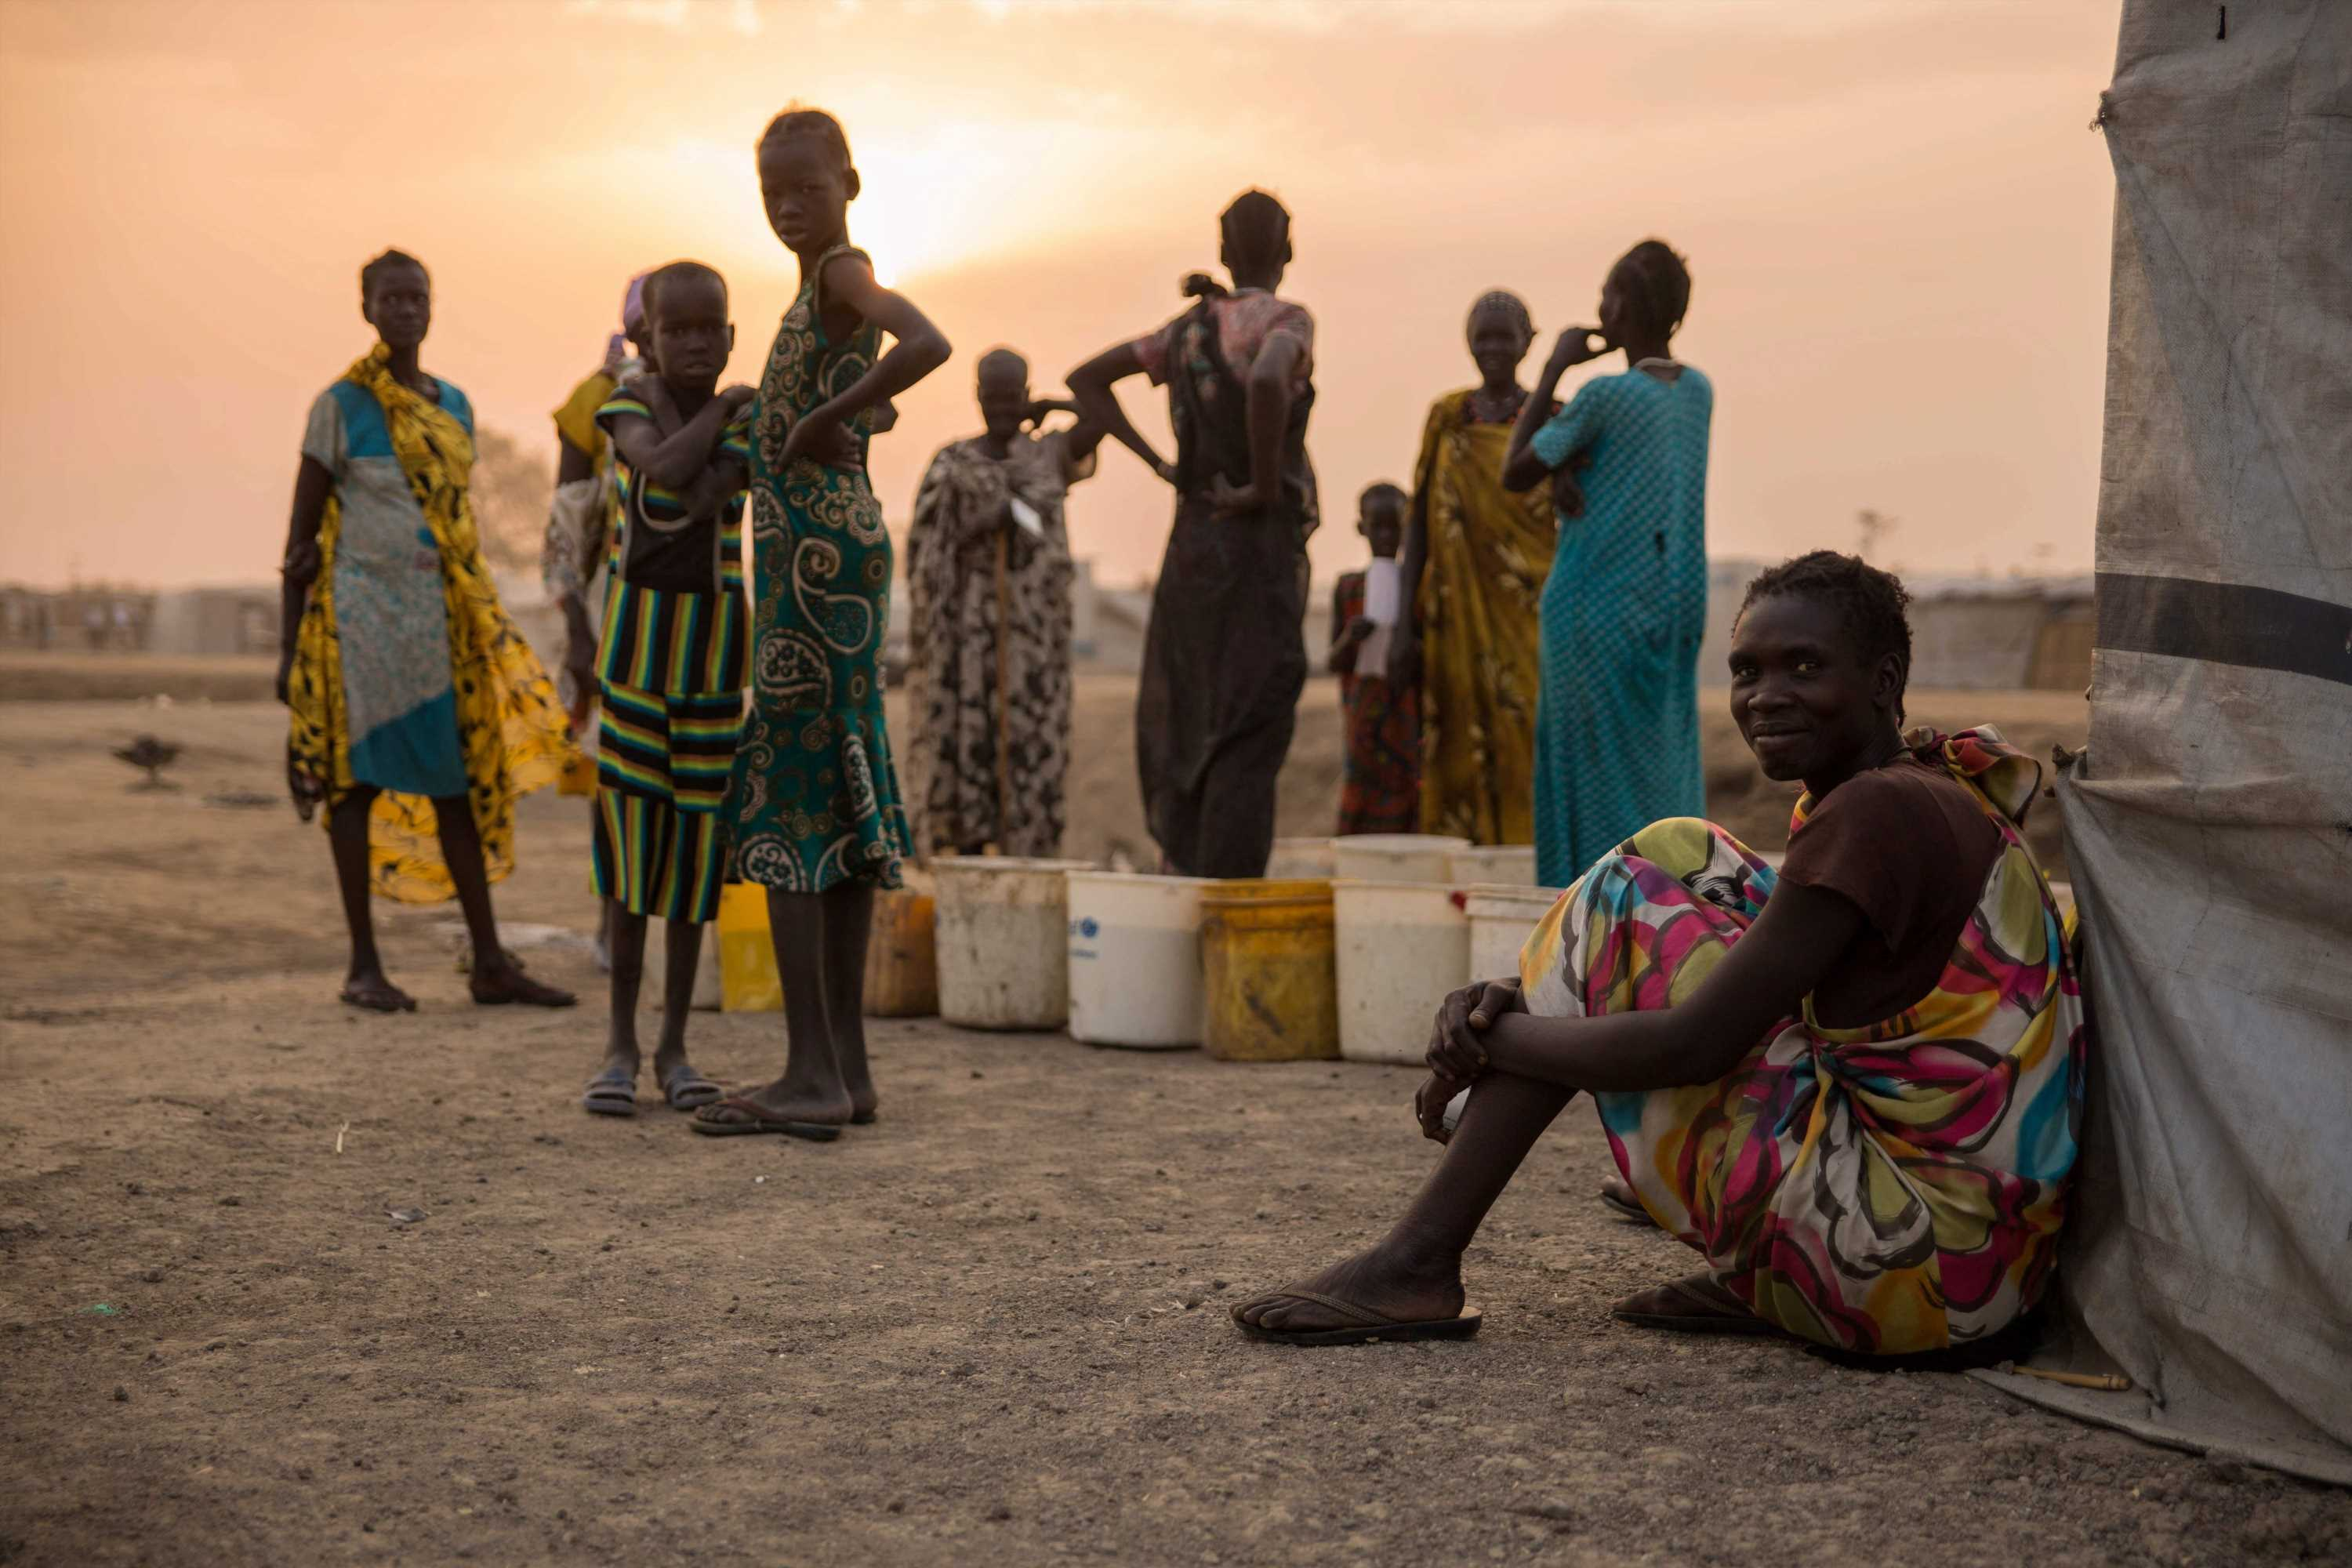 Horror as 125 women and children are raped in sickening 10 DAY attack in South Sudan